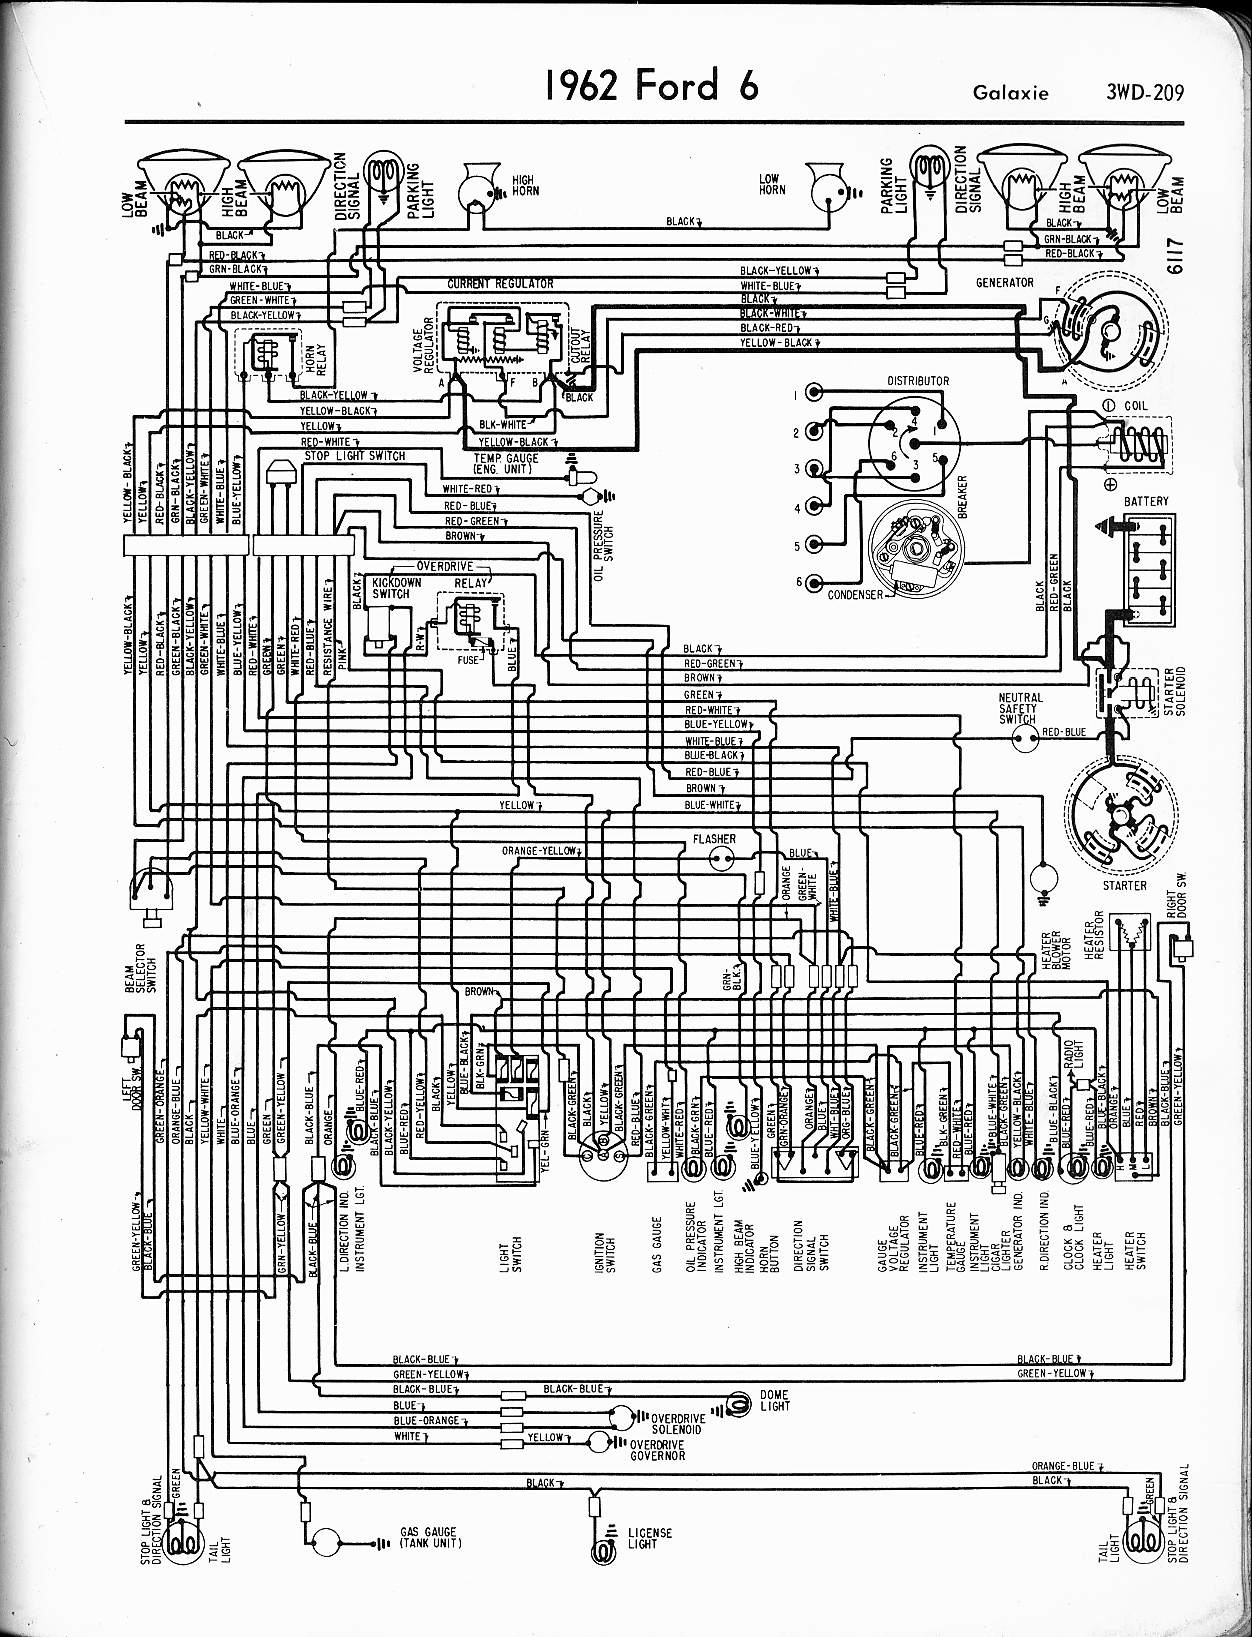 57 65 Ford Wiring Diagrams Electrical 2005 1962 6 Cyl Galaxie